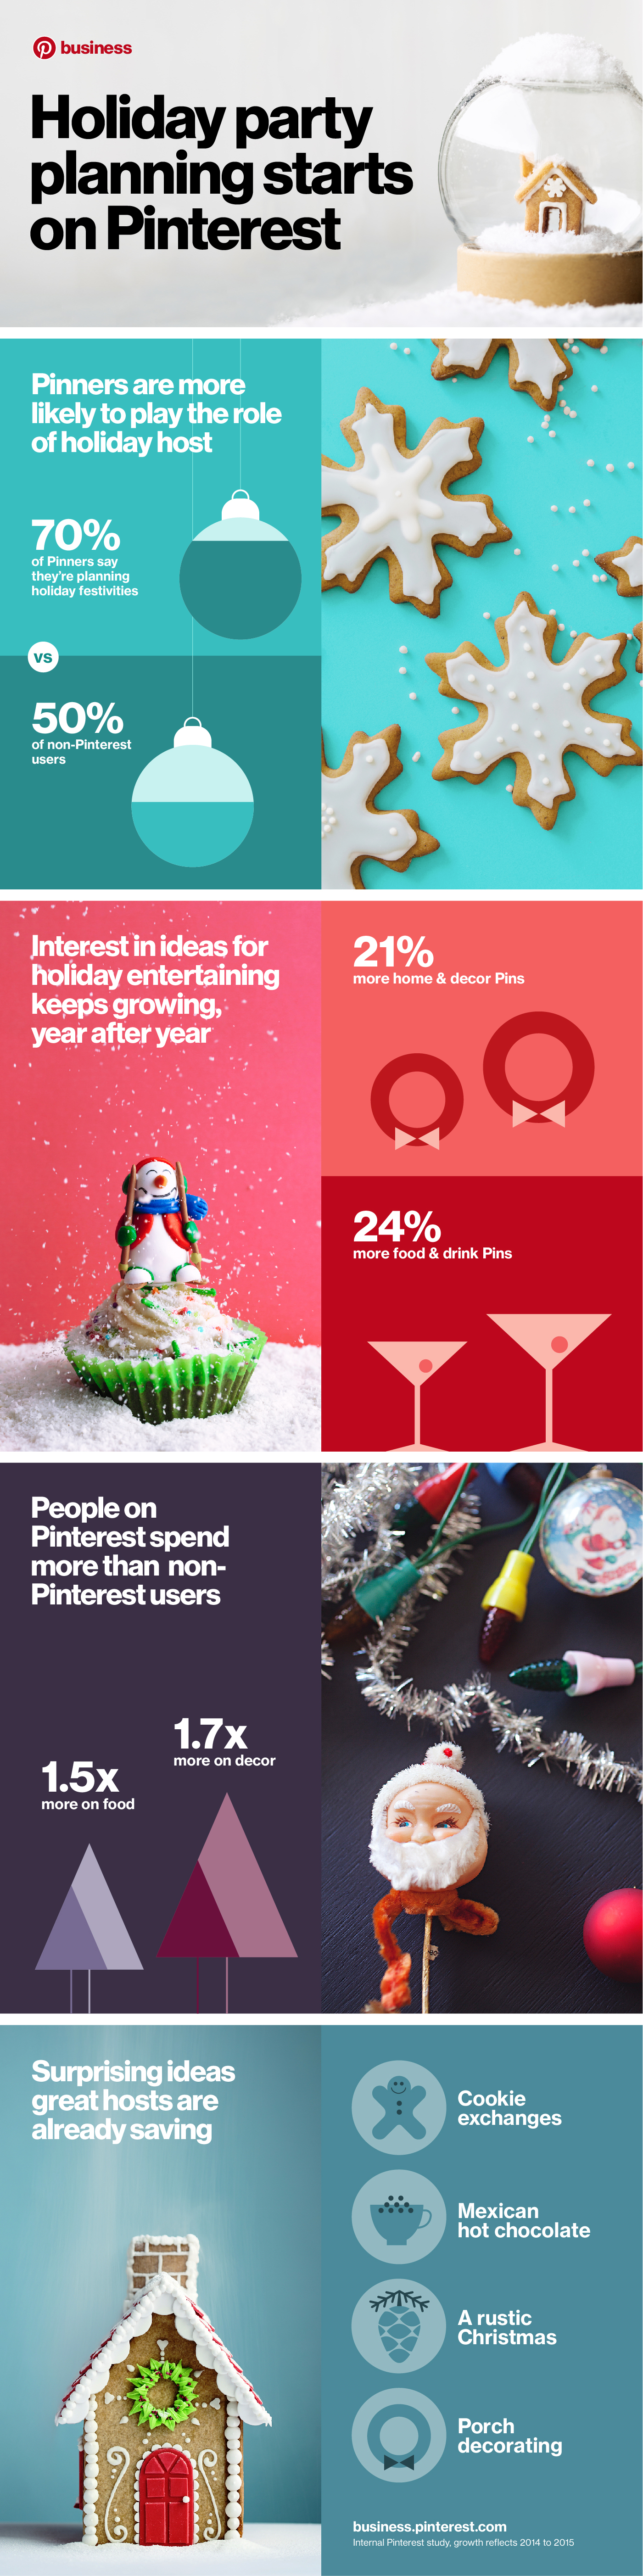 How to Tap into Holiday Trends on Pinterest [Infographic] | Social Media Today